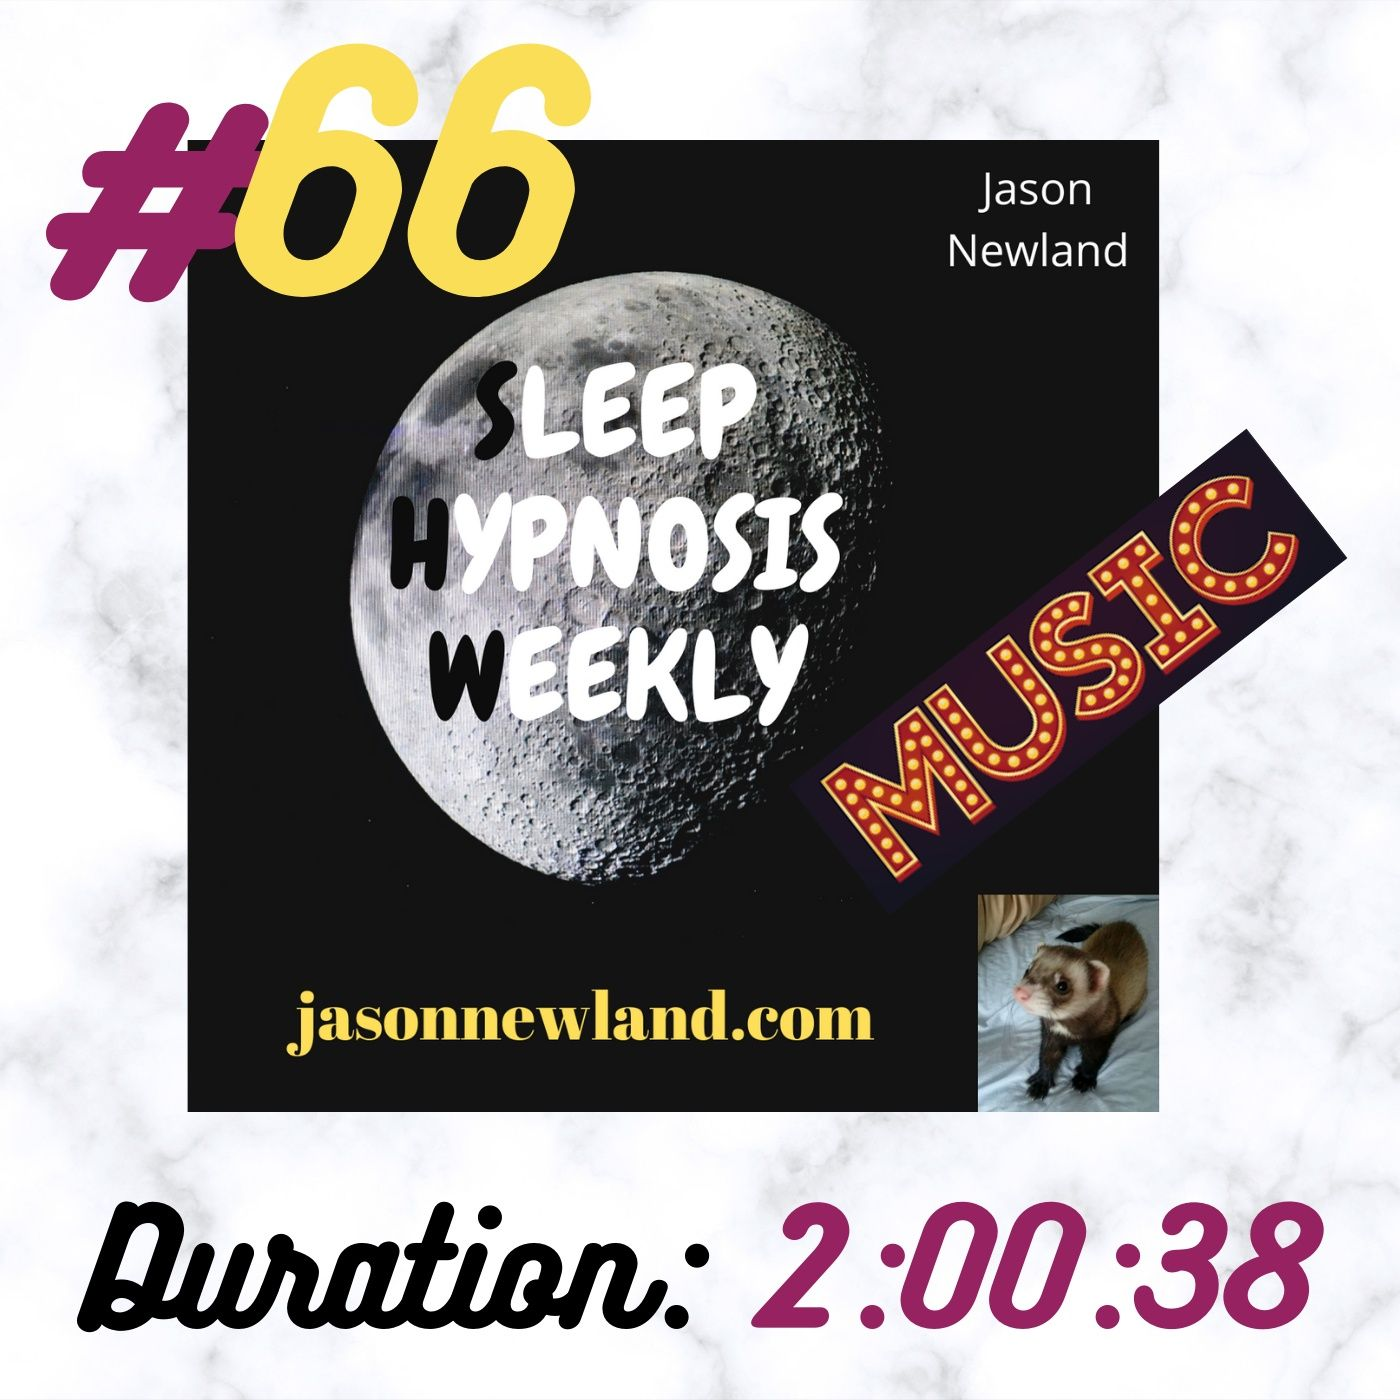 "Sleep Hypnosis Weekly #66 ""COMFORT, SAFETY & LOVE"" (Jason Newland) (10th February 2021) with MUSIC"